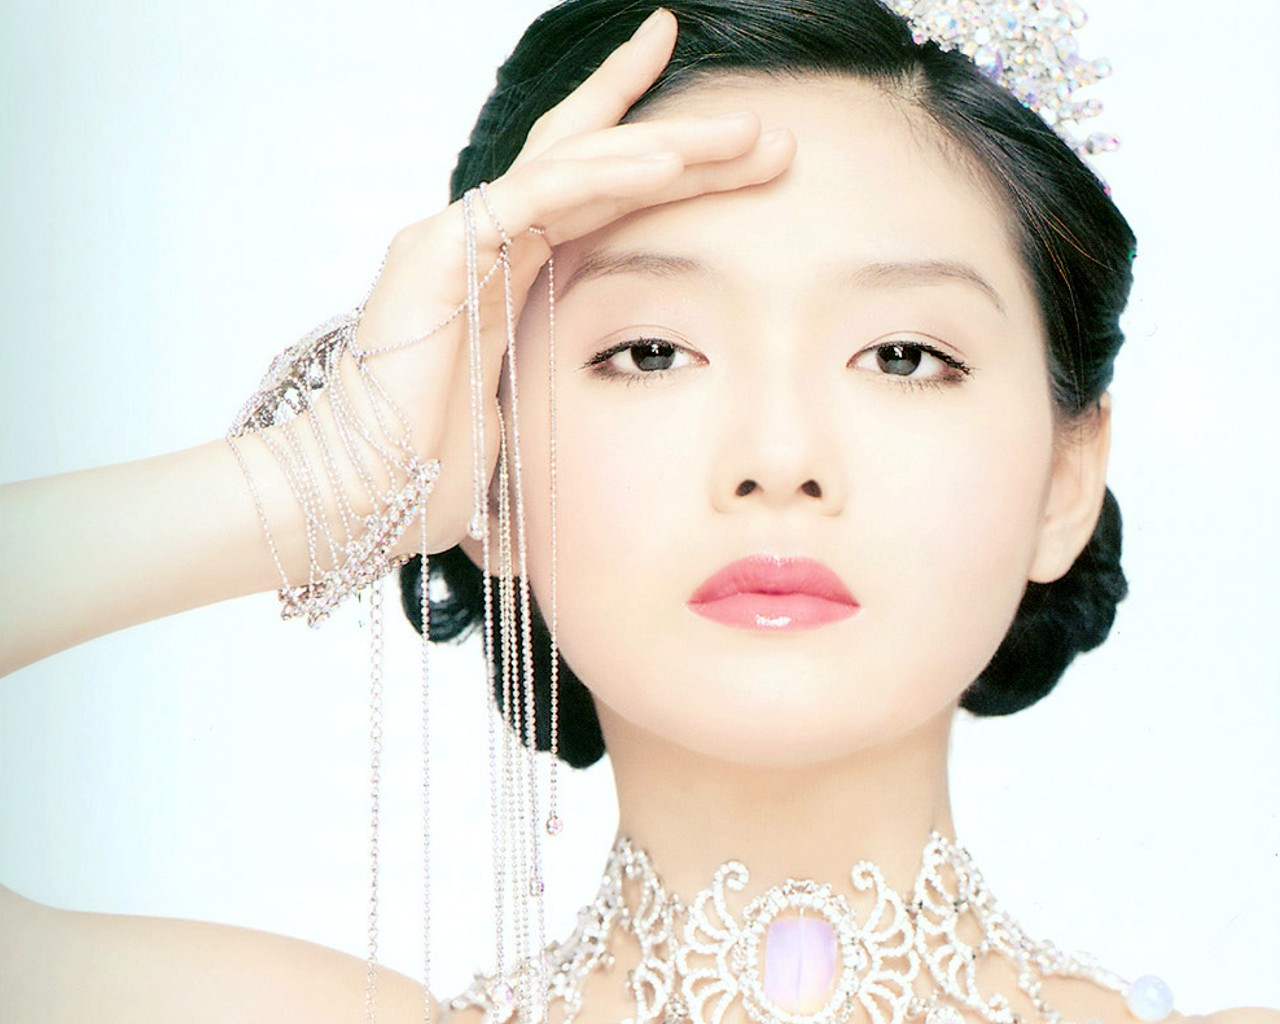 1280x1024 - Barbie Hsu Wallpapers 9